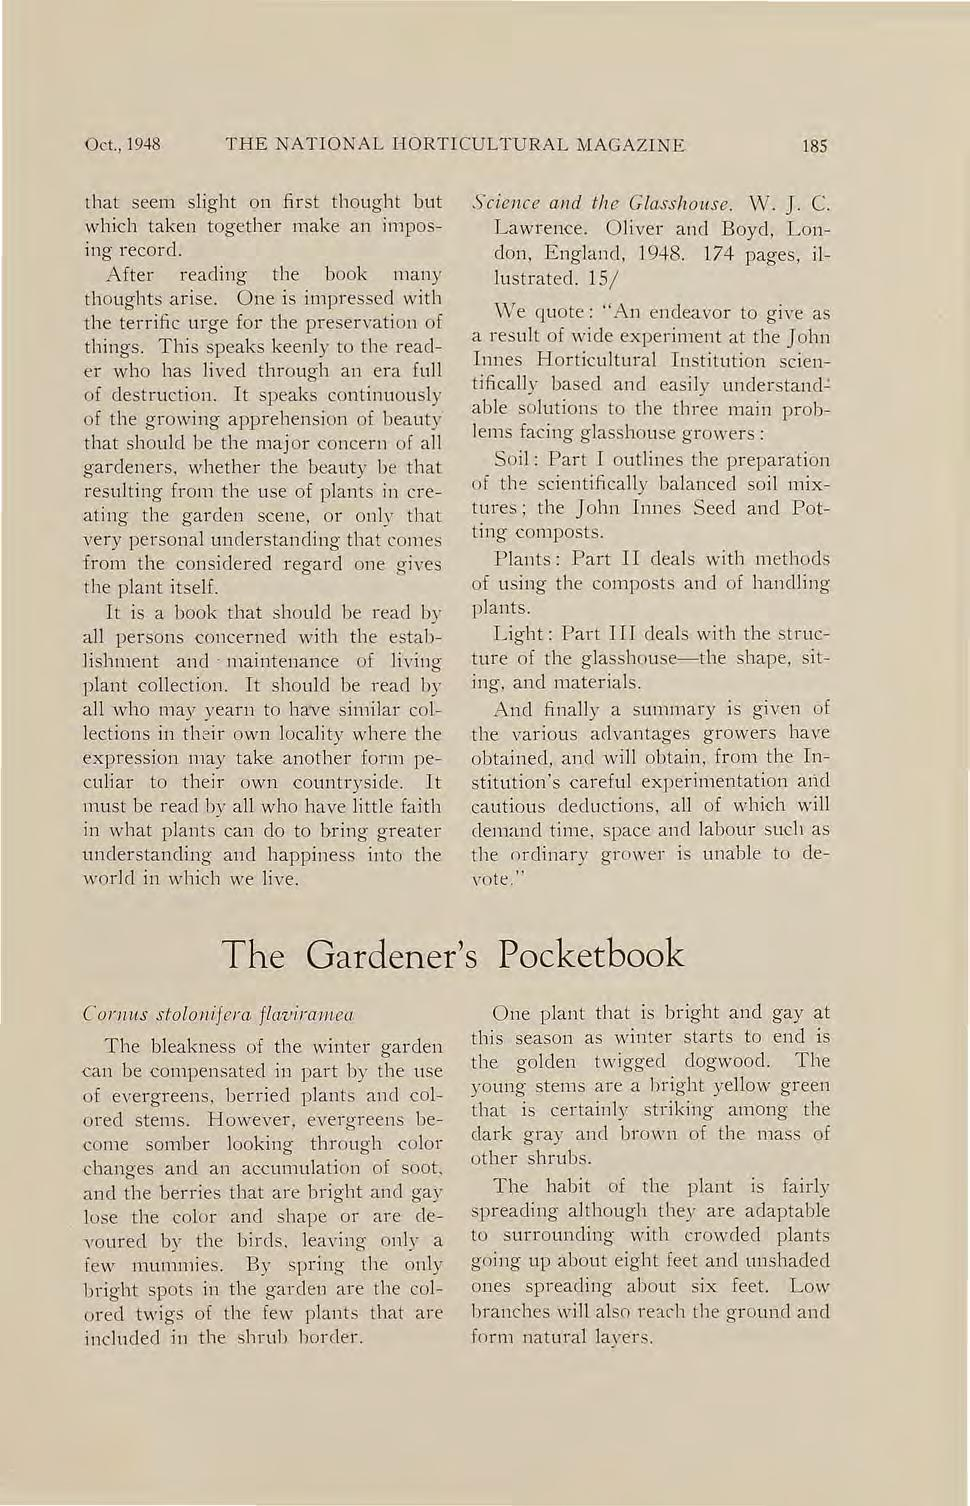 Oct., 1948 THE NATIONAL HORTICULTURAL MAGAZINE 185 that seem slight on first thought but which taken together make an Imposing record. After reading the book many thoughts arise.